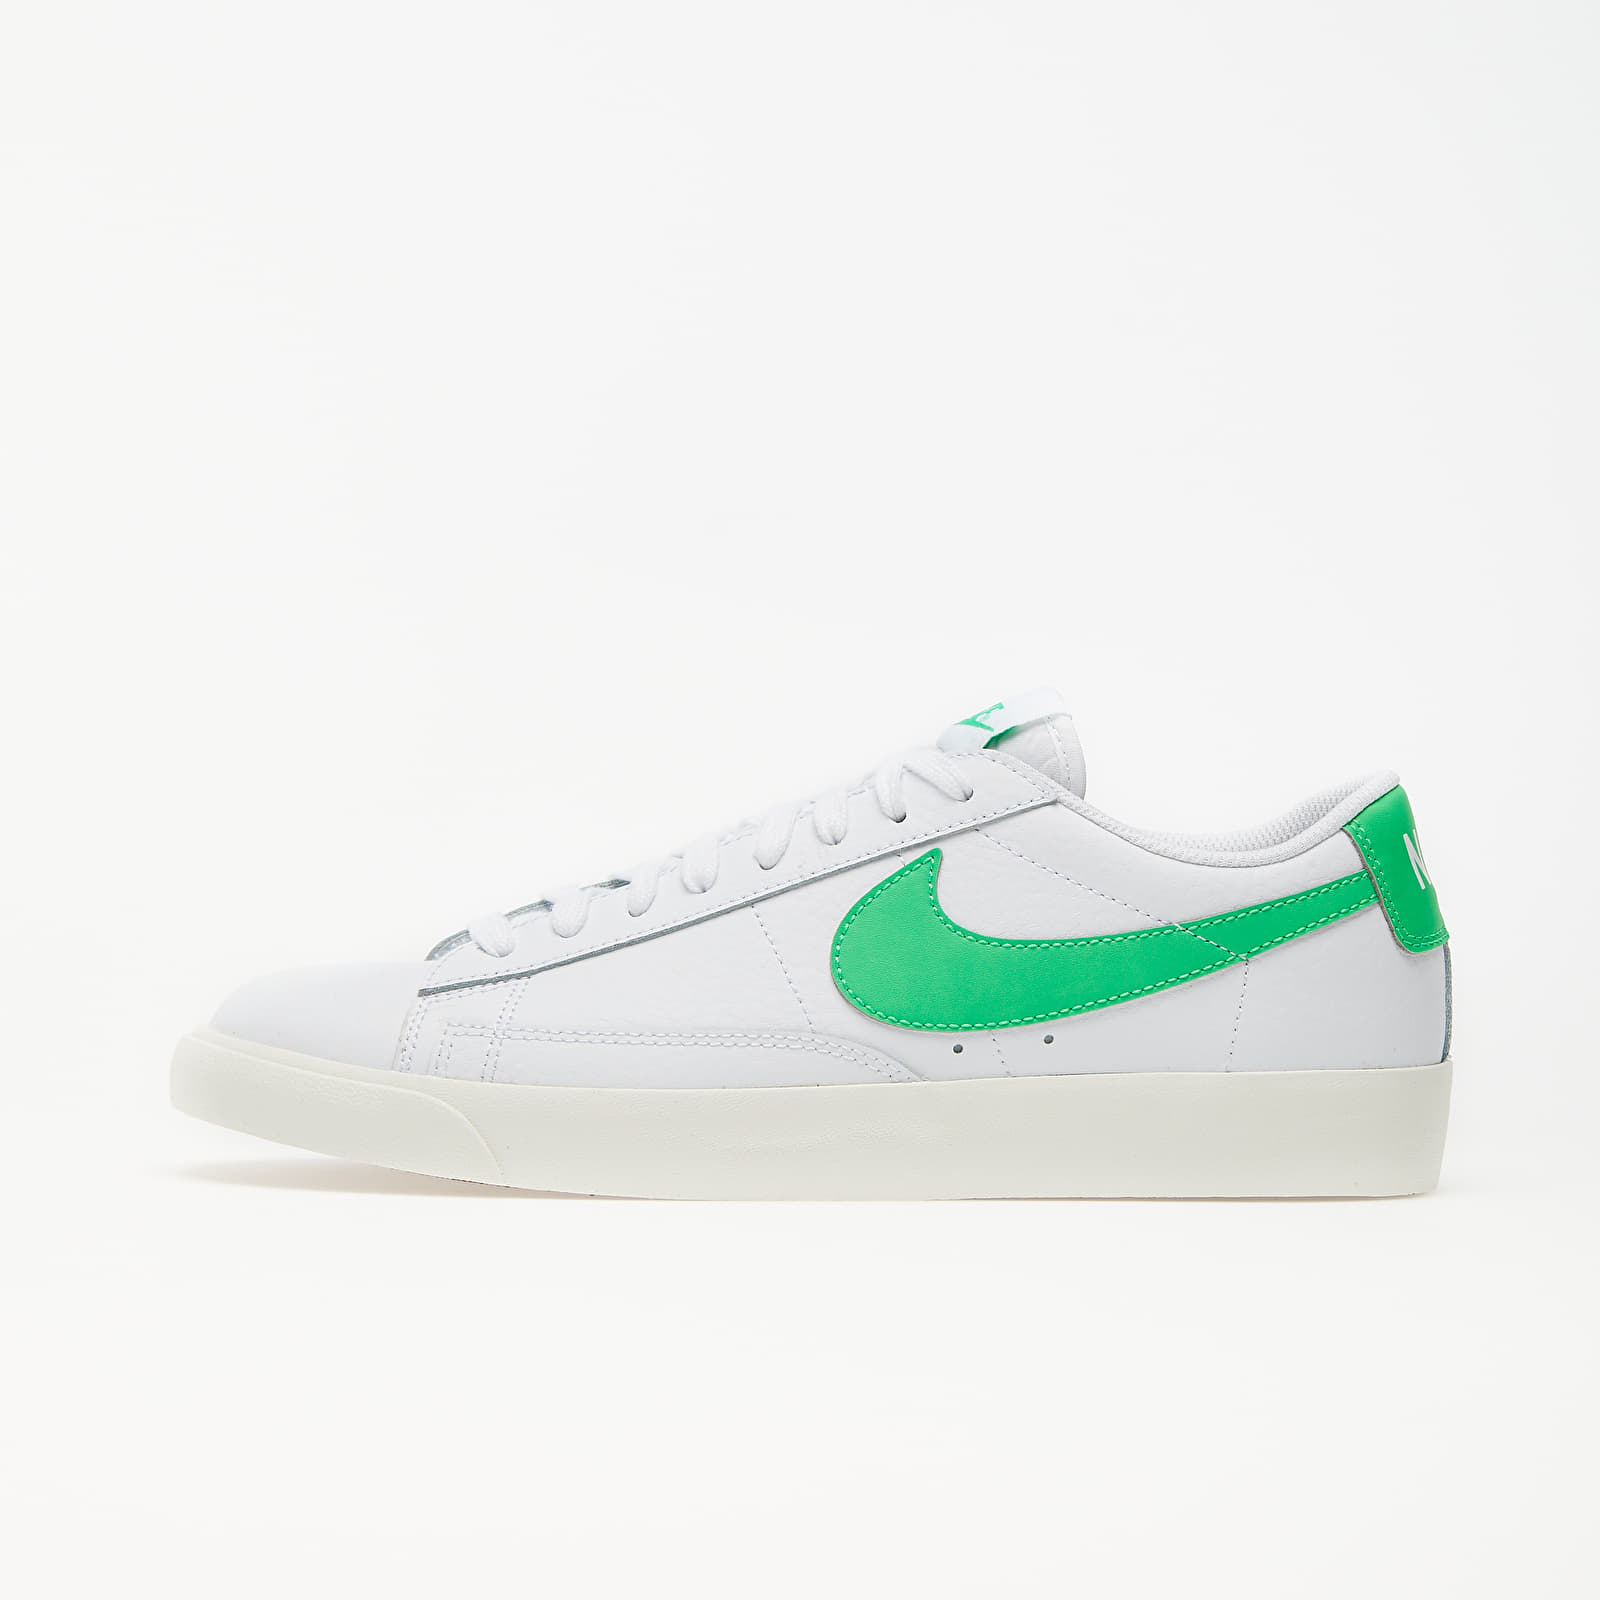 Men's shoes Nike Blazer Low Leather White/ Green Spark-Sail